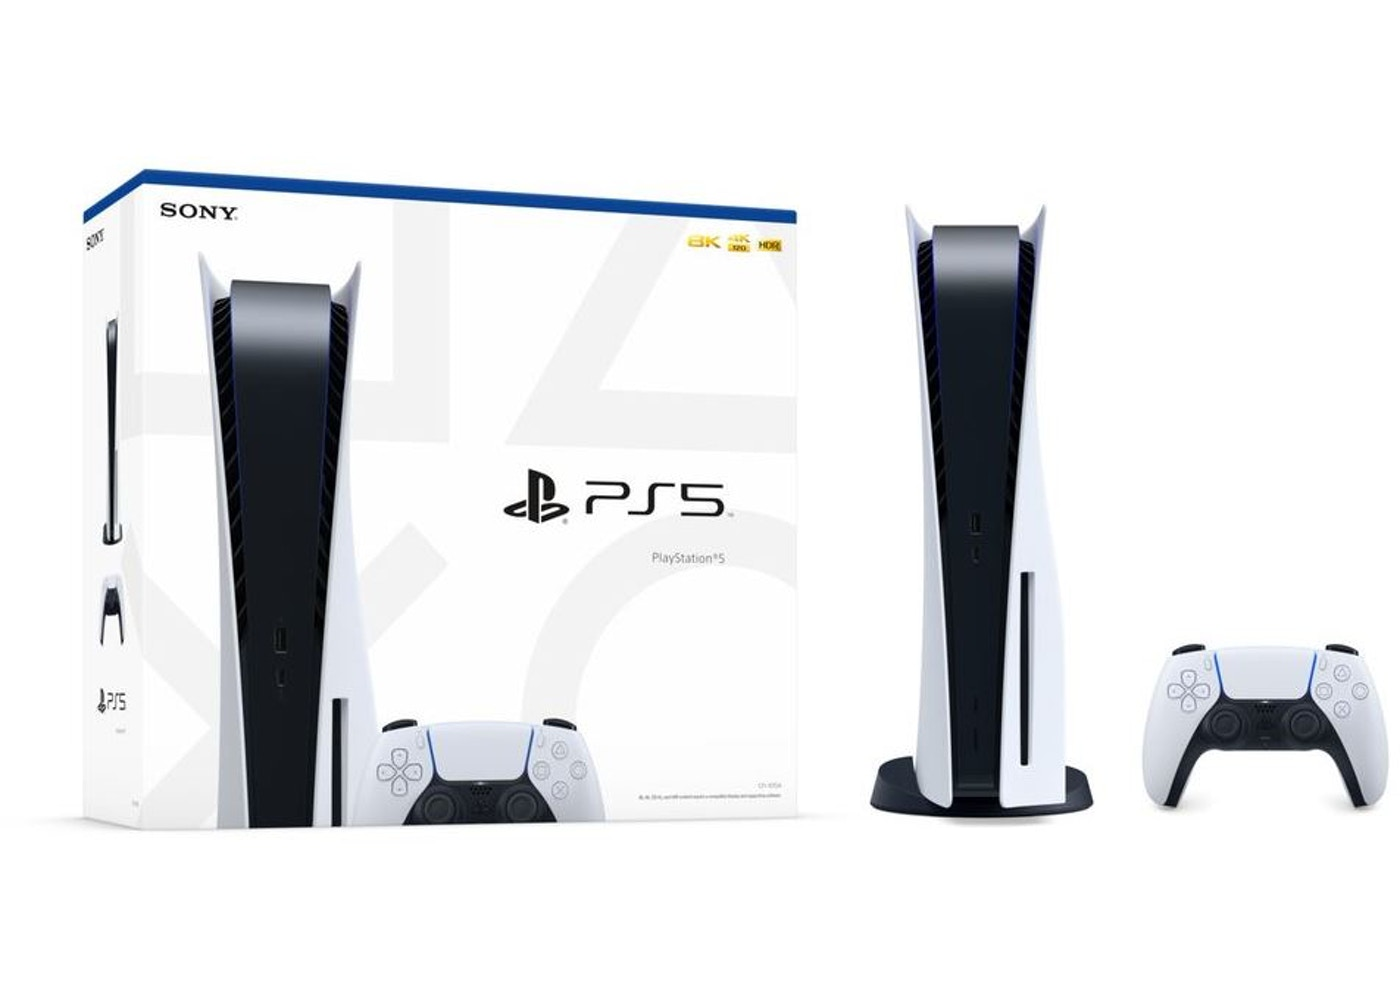 Sony Playstation Ps5 Spiele